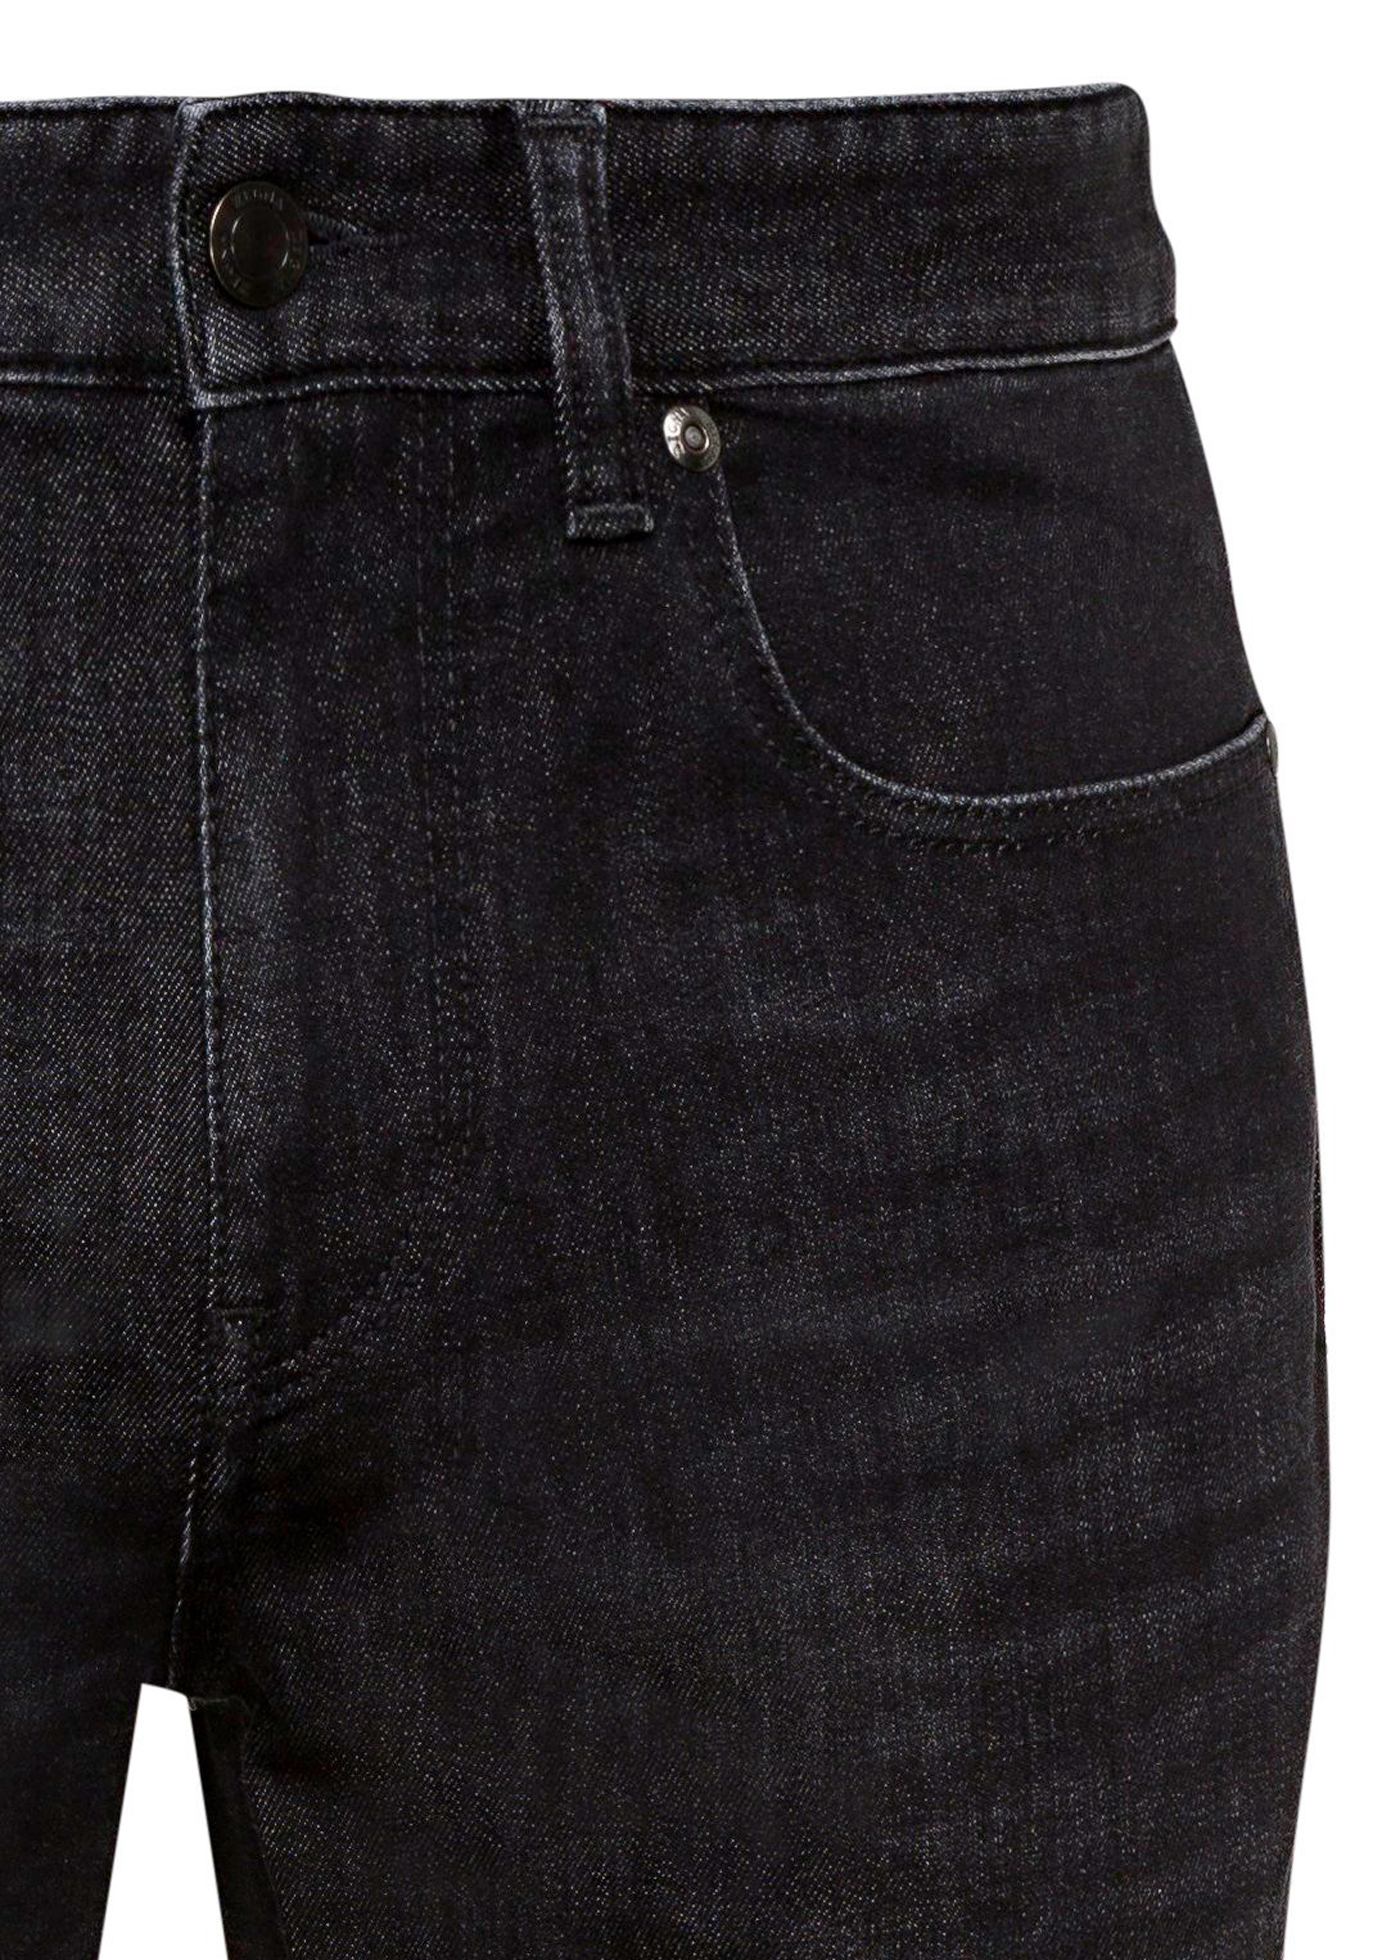 LUXE TWILL BLACK DENIM image number 2